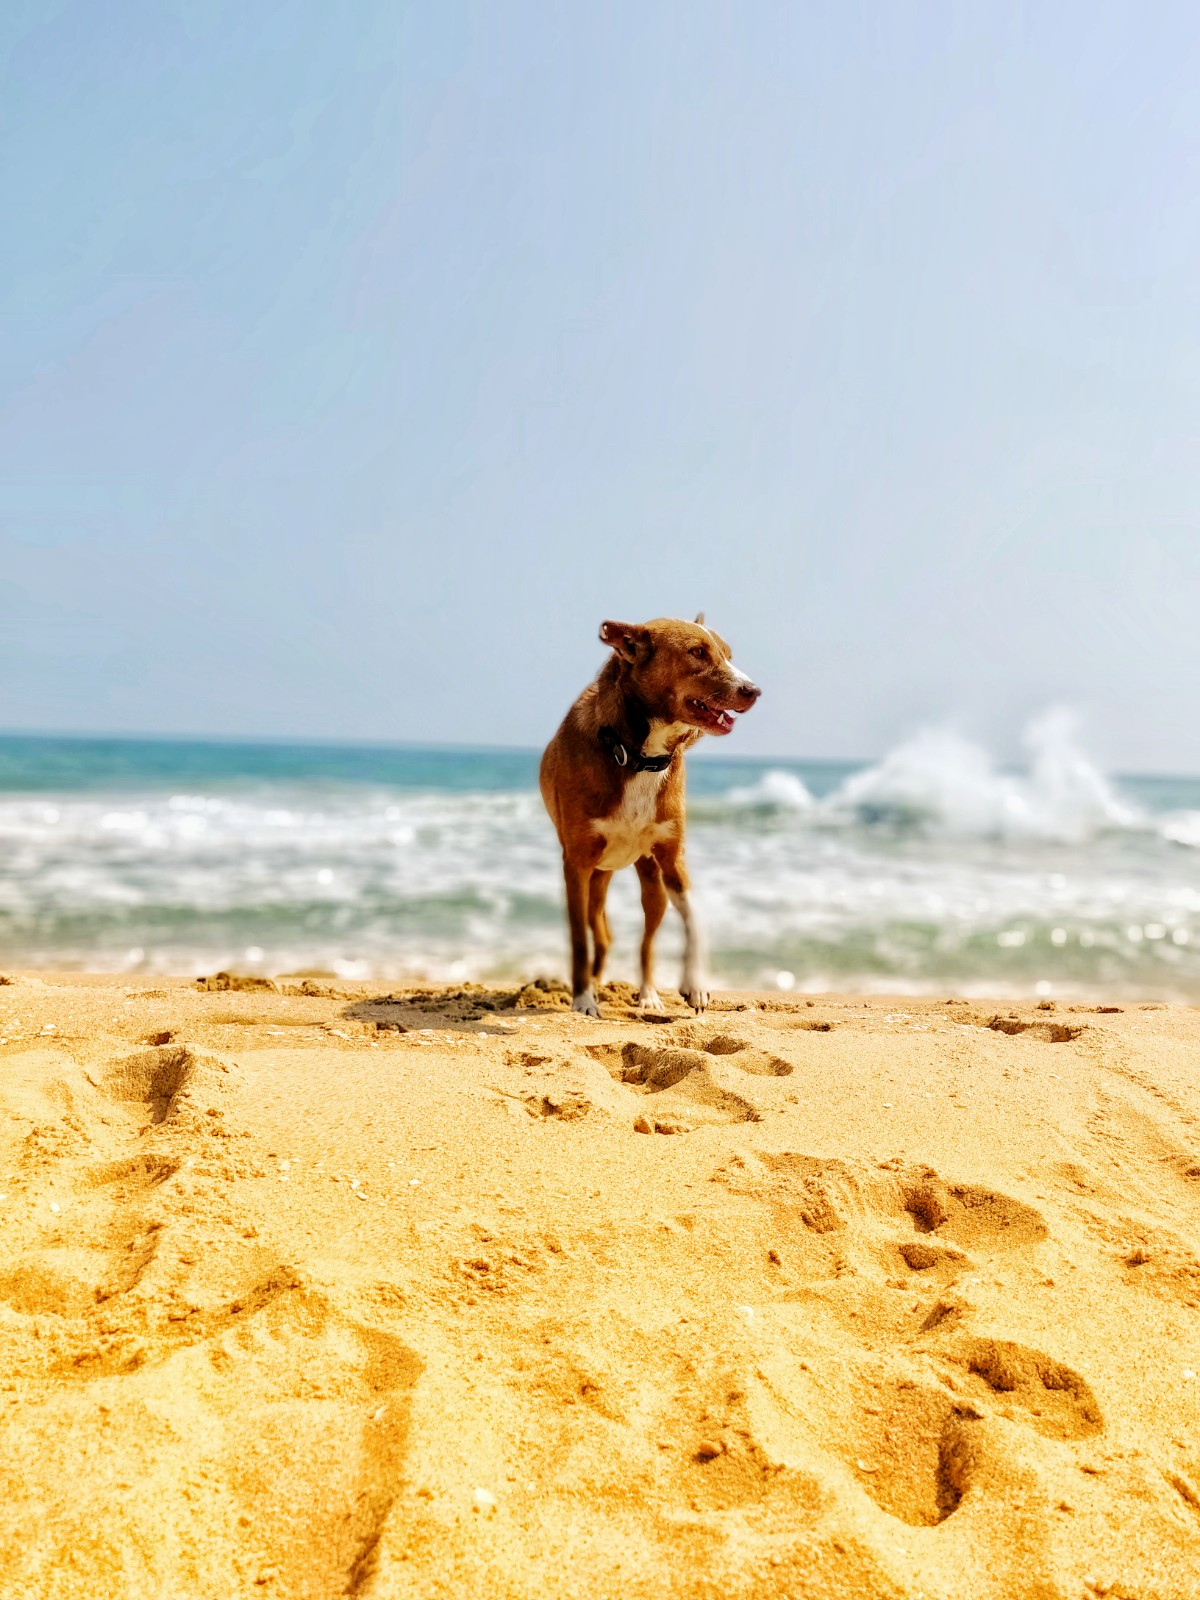 Dogs are recurring presence in Tishani's poetry, this is a photograph of one of the many dogs she's adopted in her home by the sea.